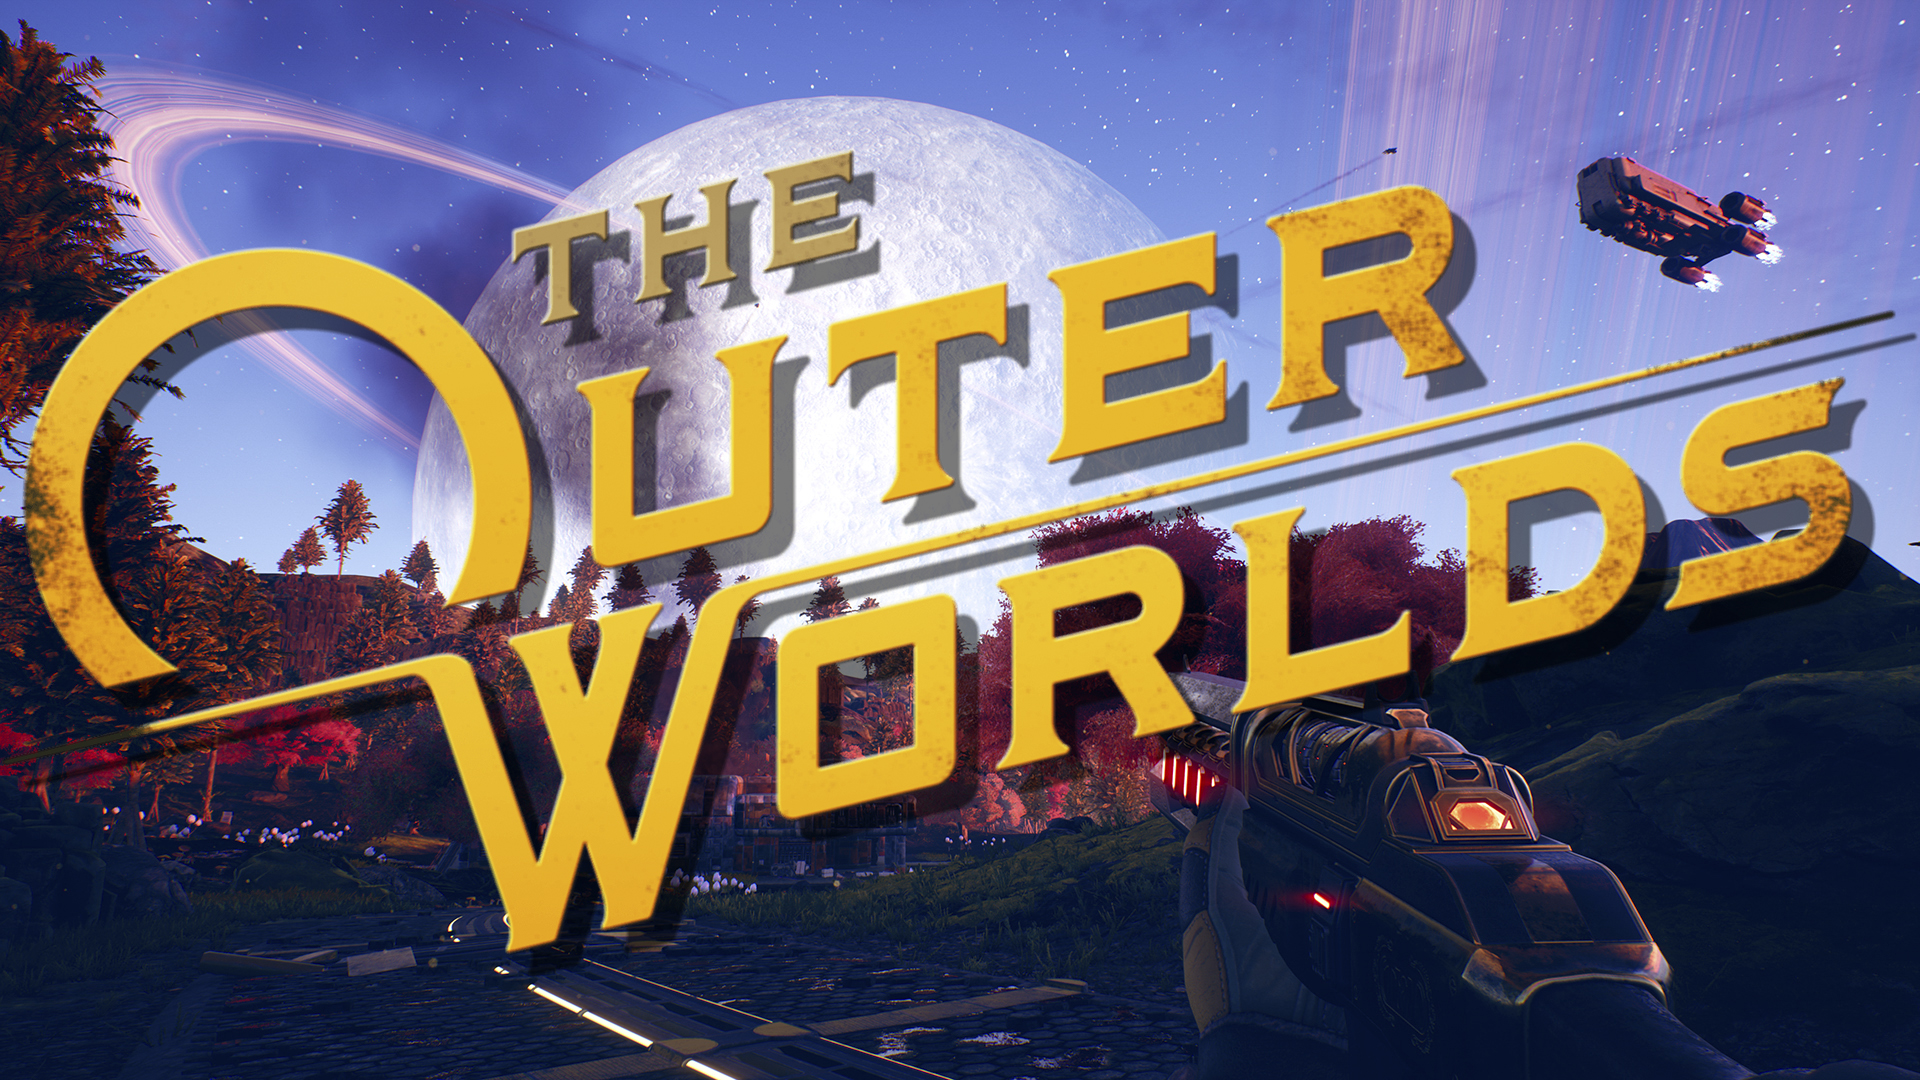 the outer worlds video game hd wallpaper 68092